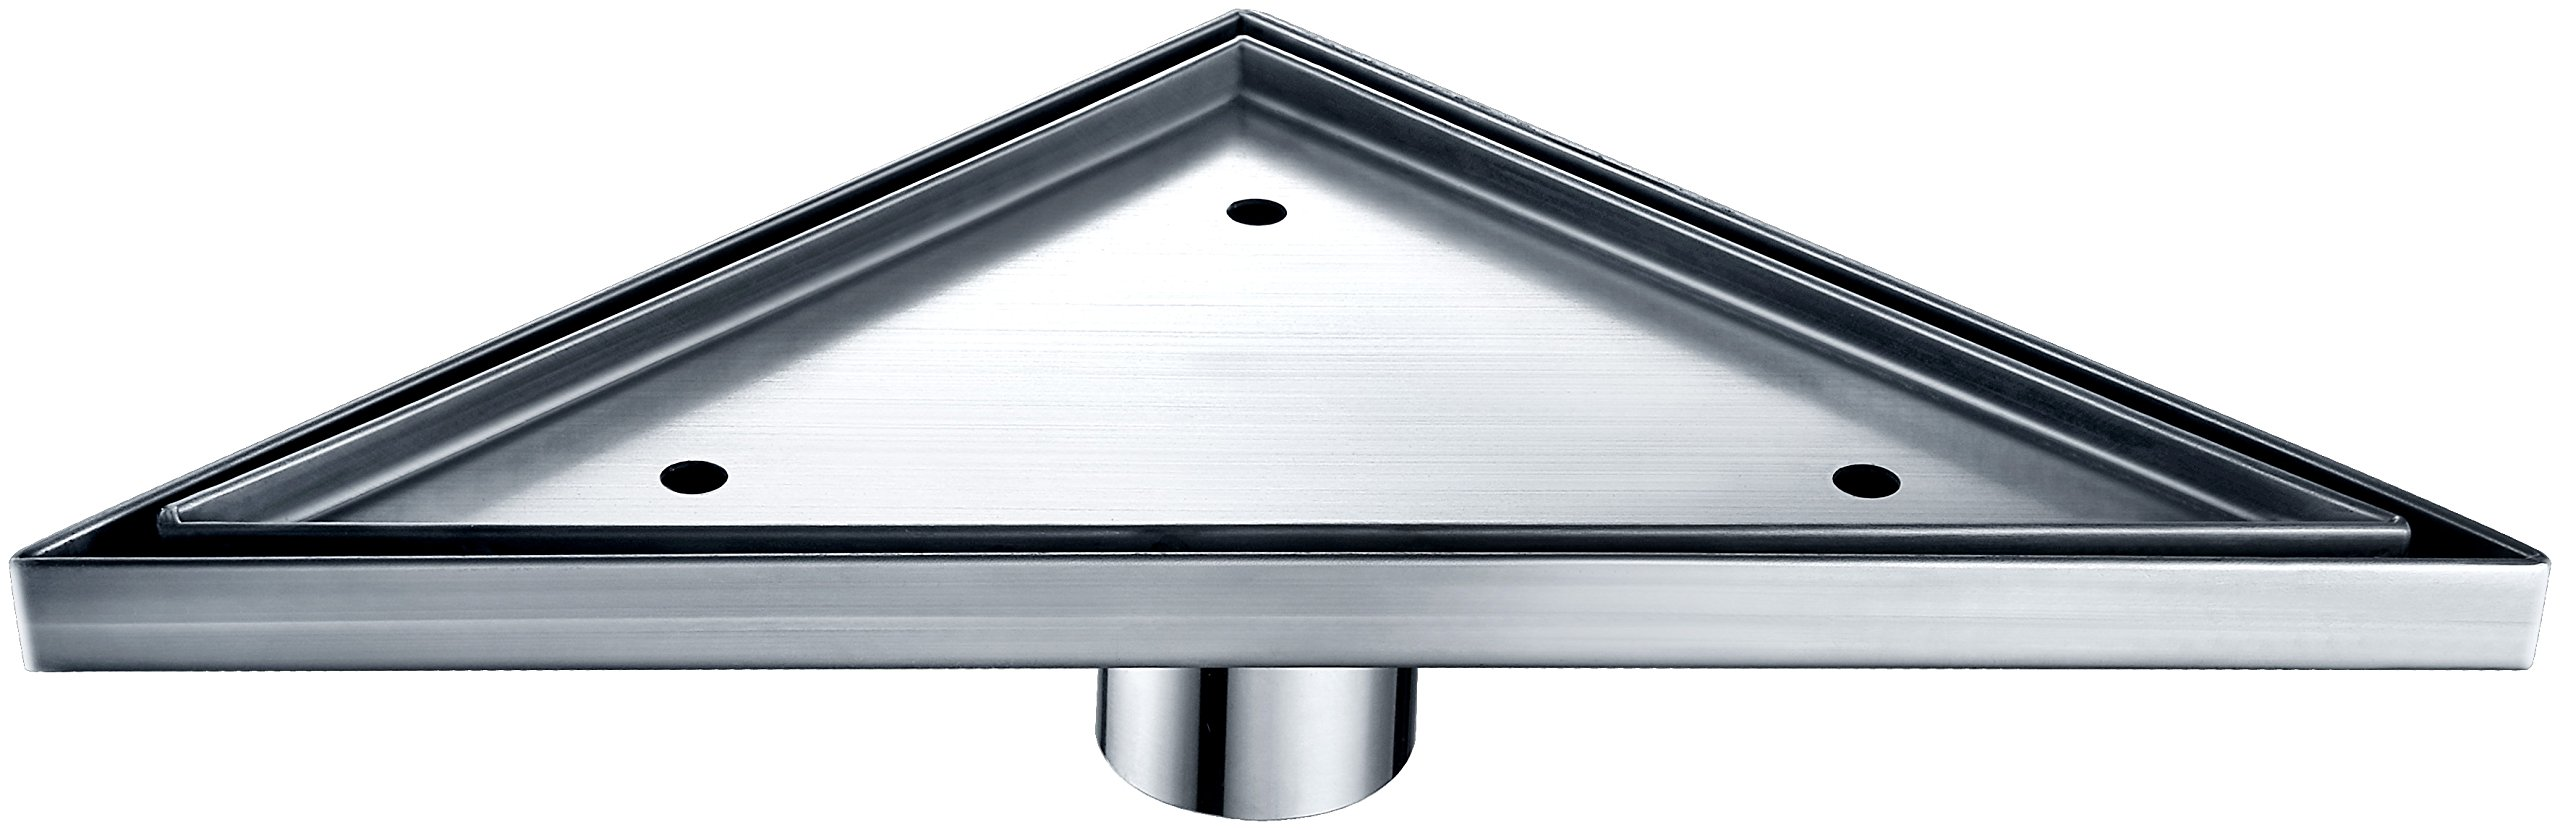 Dawn TCO131004 Contemporary Colorado River Series Triangle Shower Drain